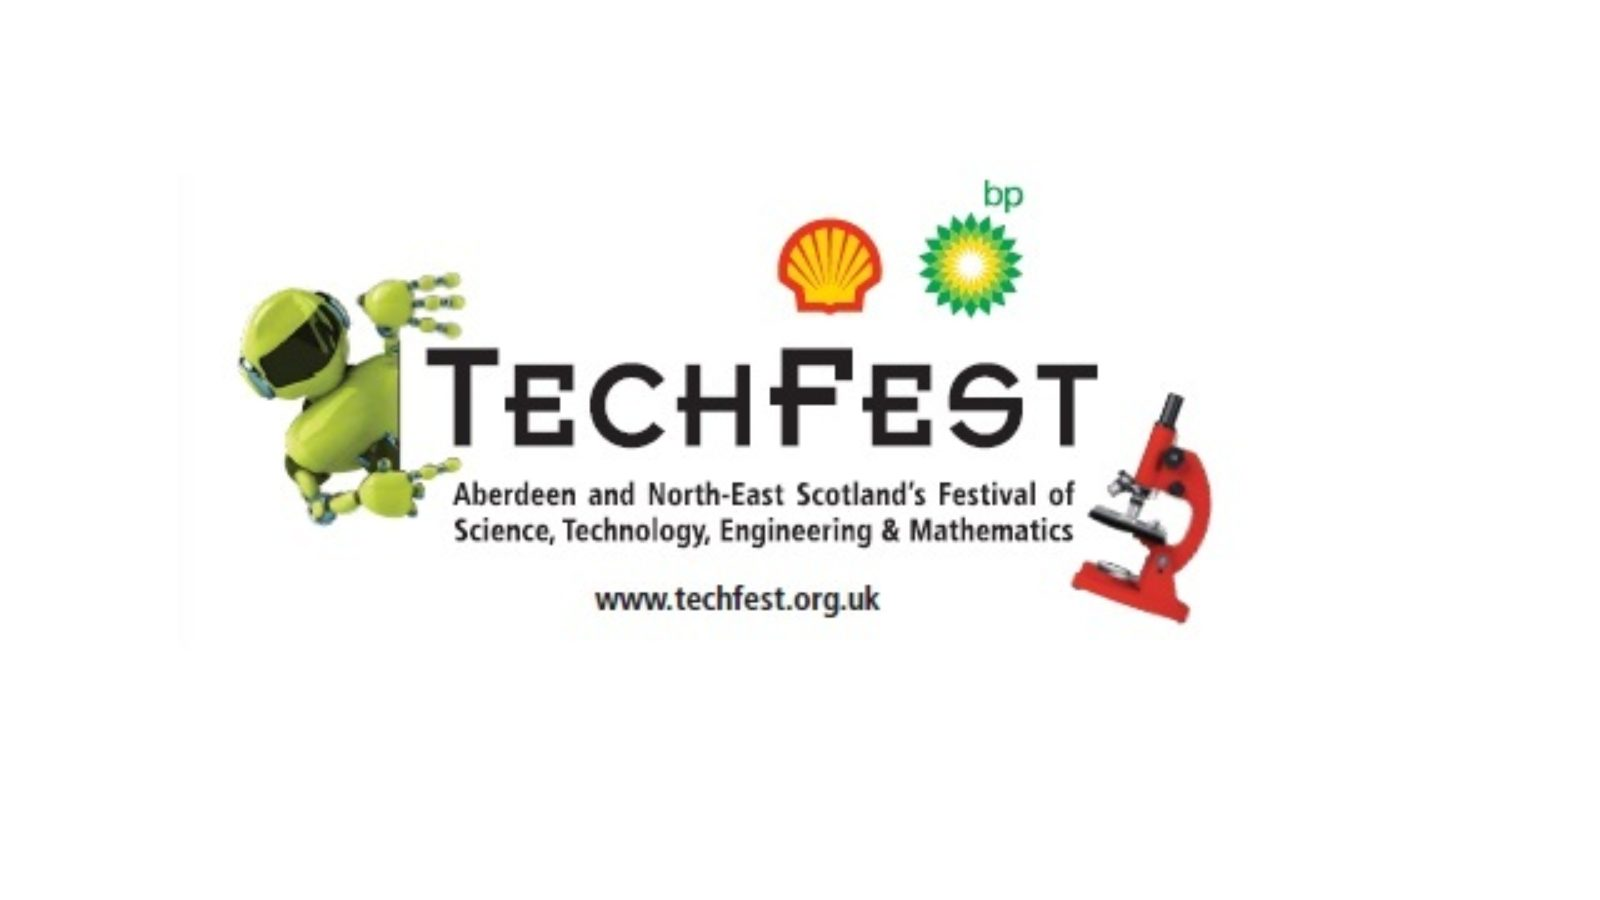 Using data to our advantage during a pandemic: The Data Lab joins TechFest in online festival